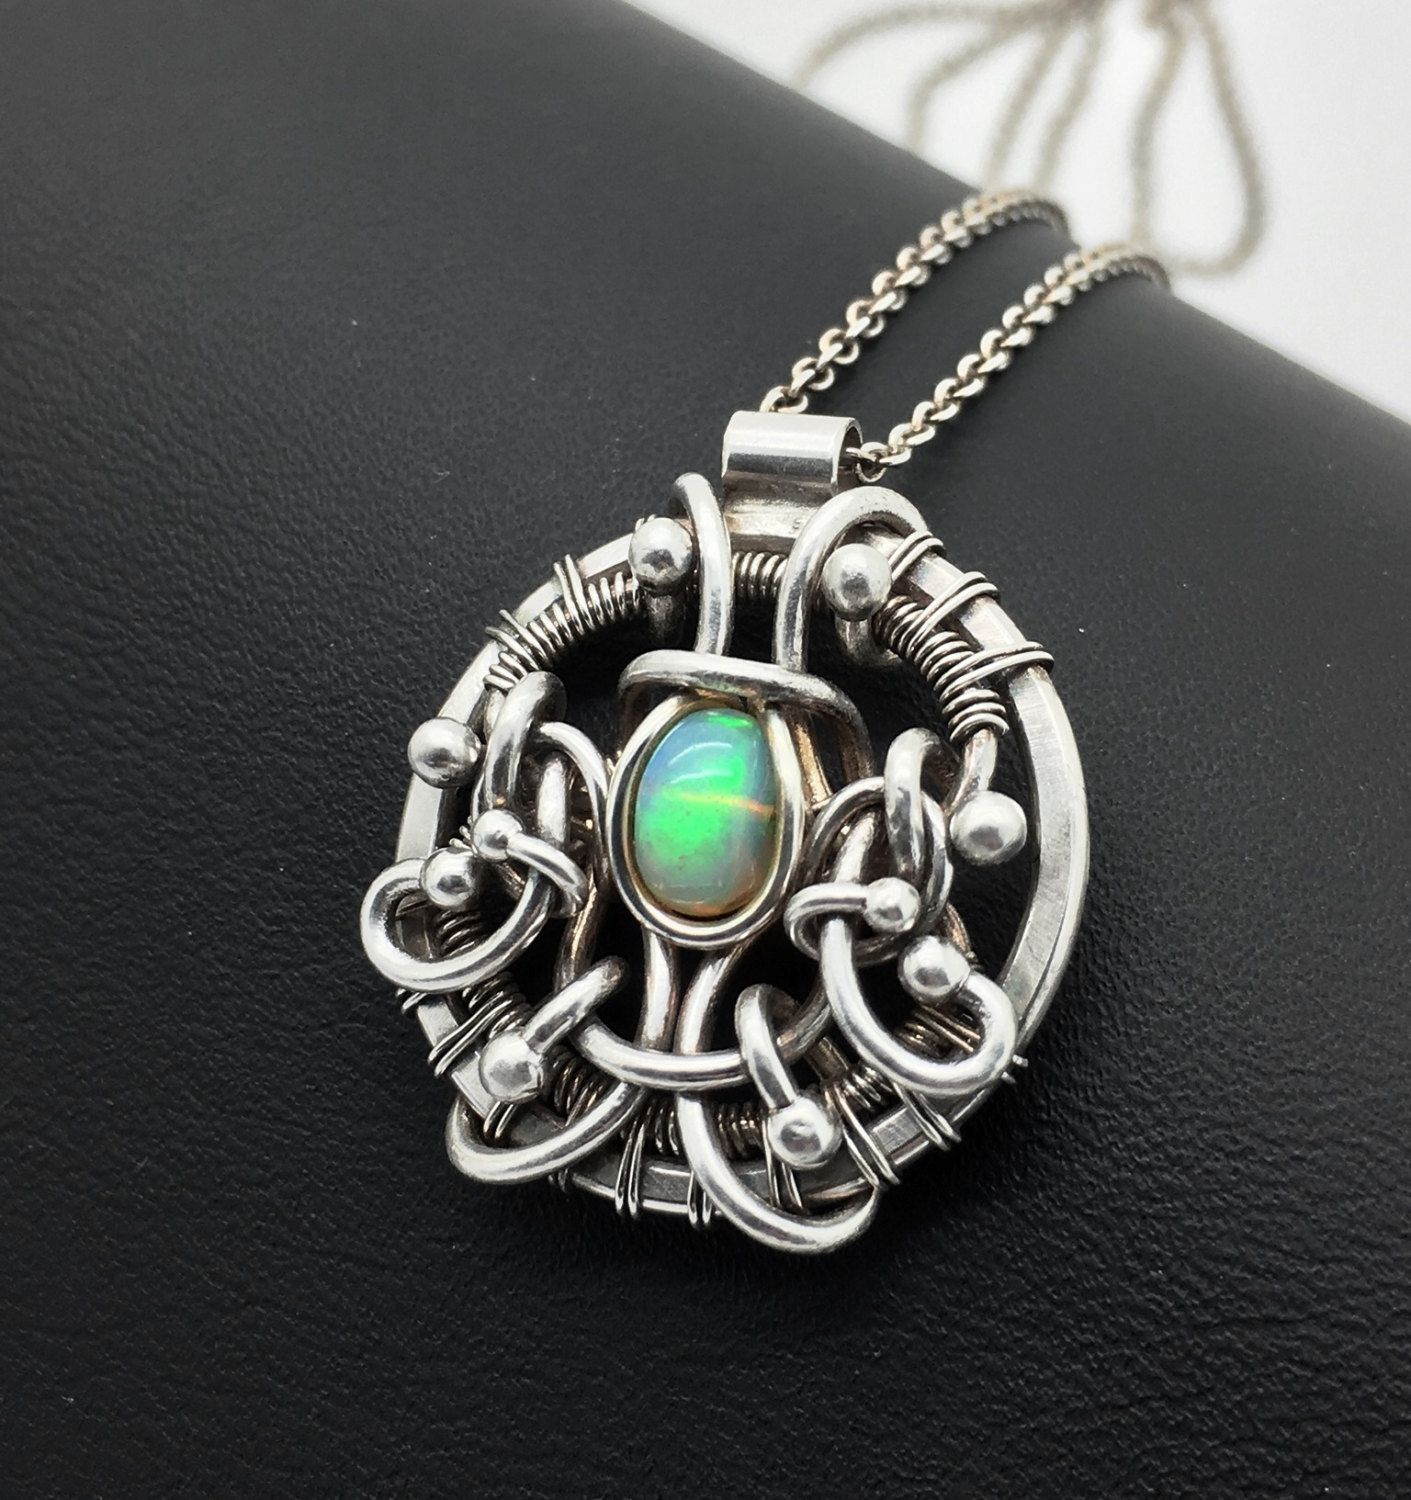 Opal pendant ethiopian opal opal jewelry wire wrapped pendant opal pendant ethiopian opal opal jewelry wire wrapped pendant silver opal pendant mozeypictures Choice Image